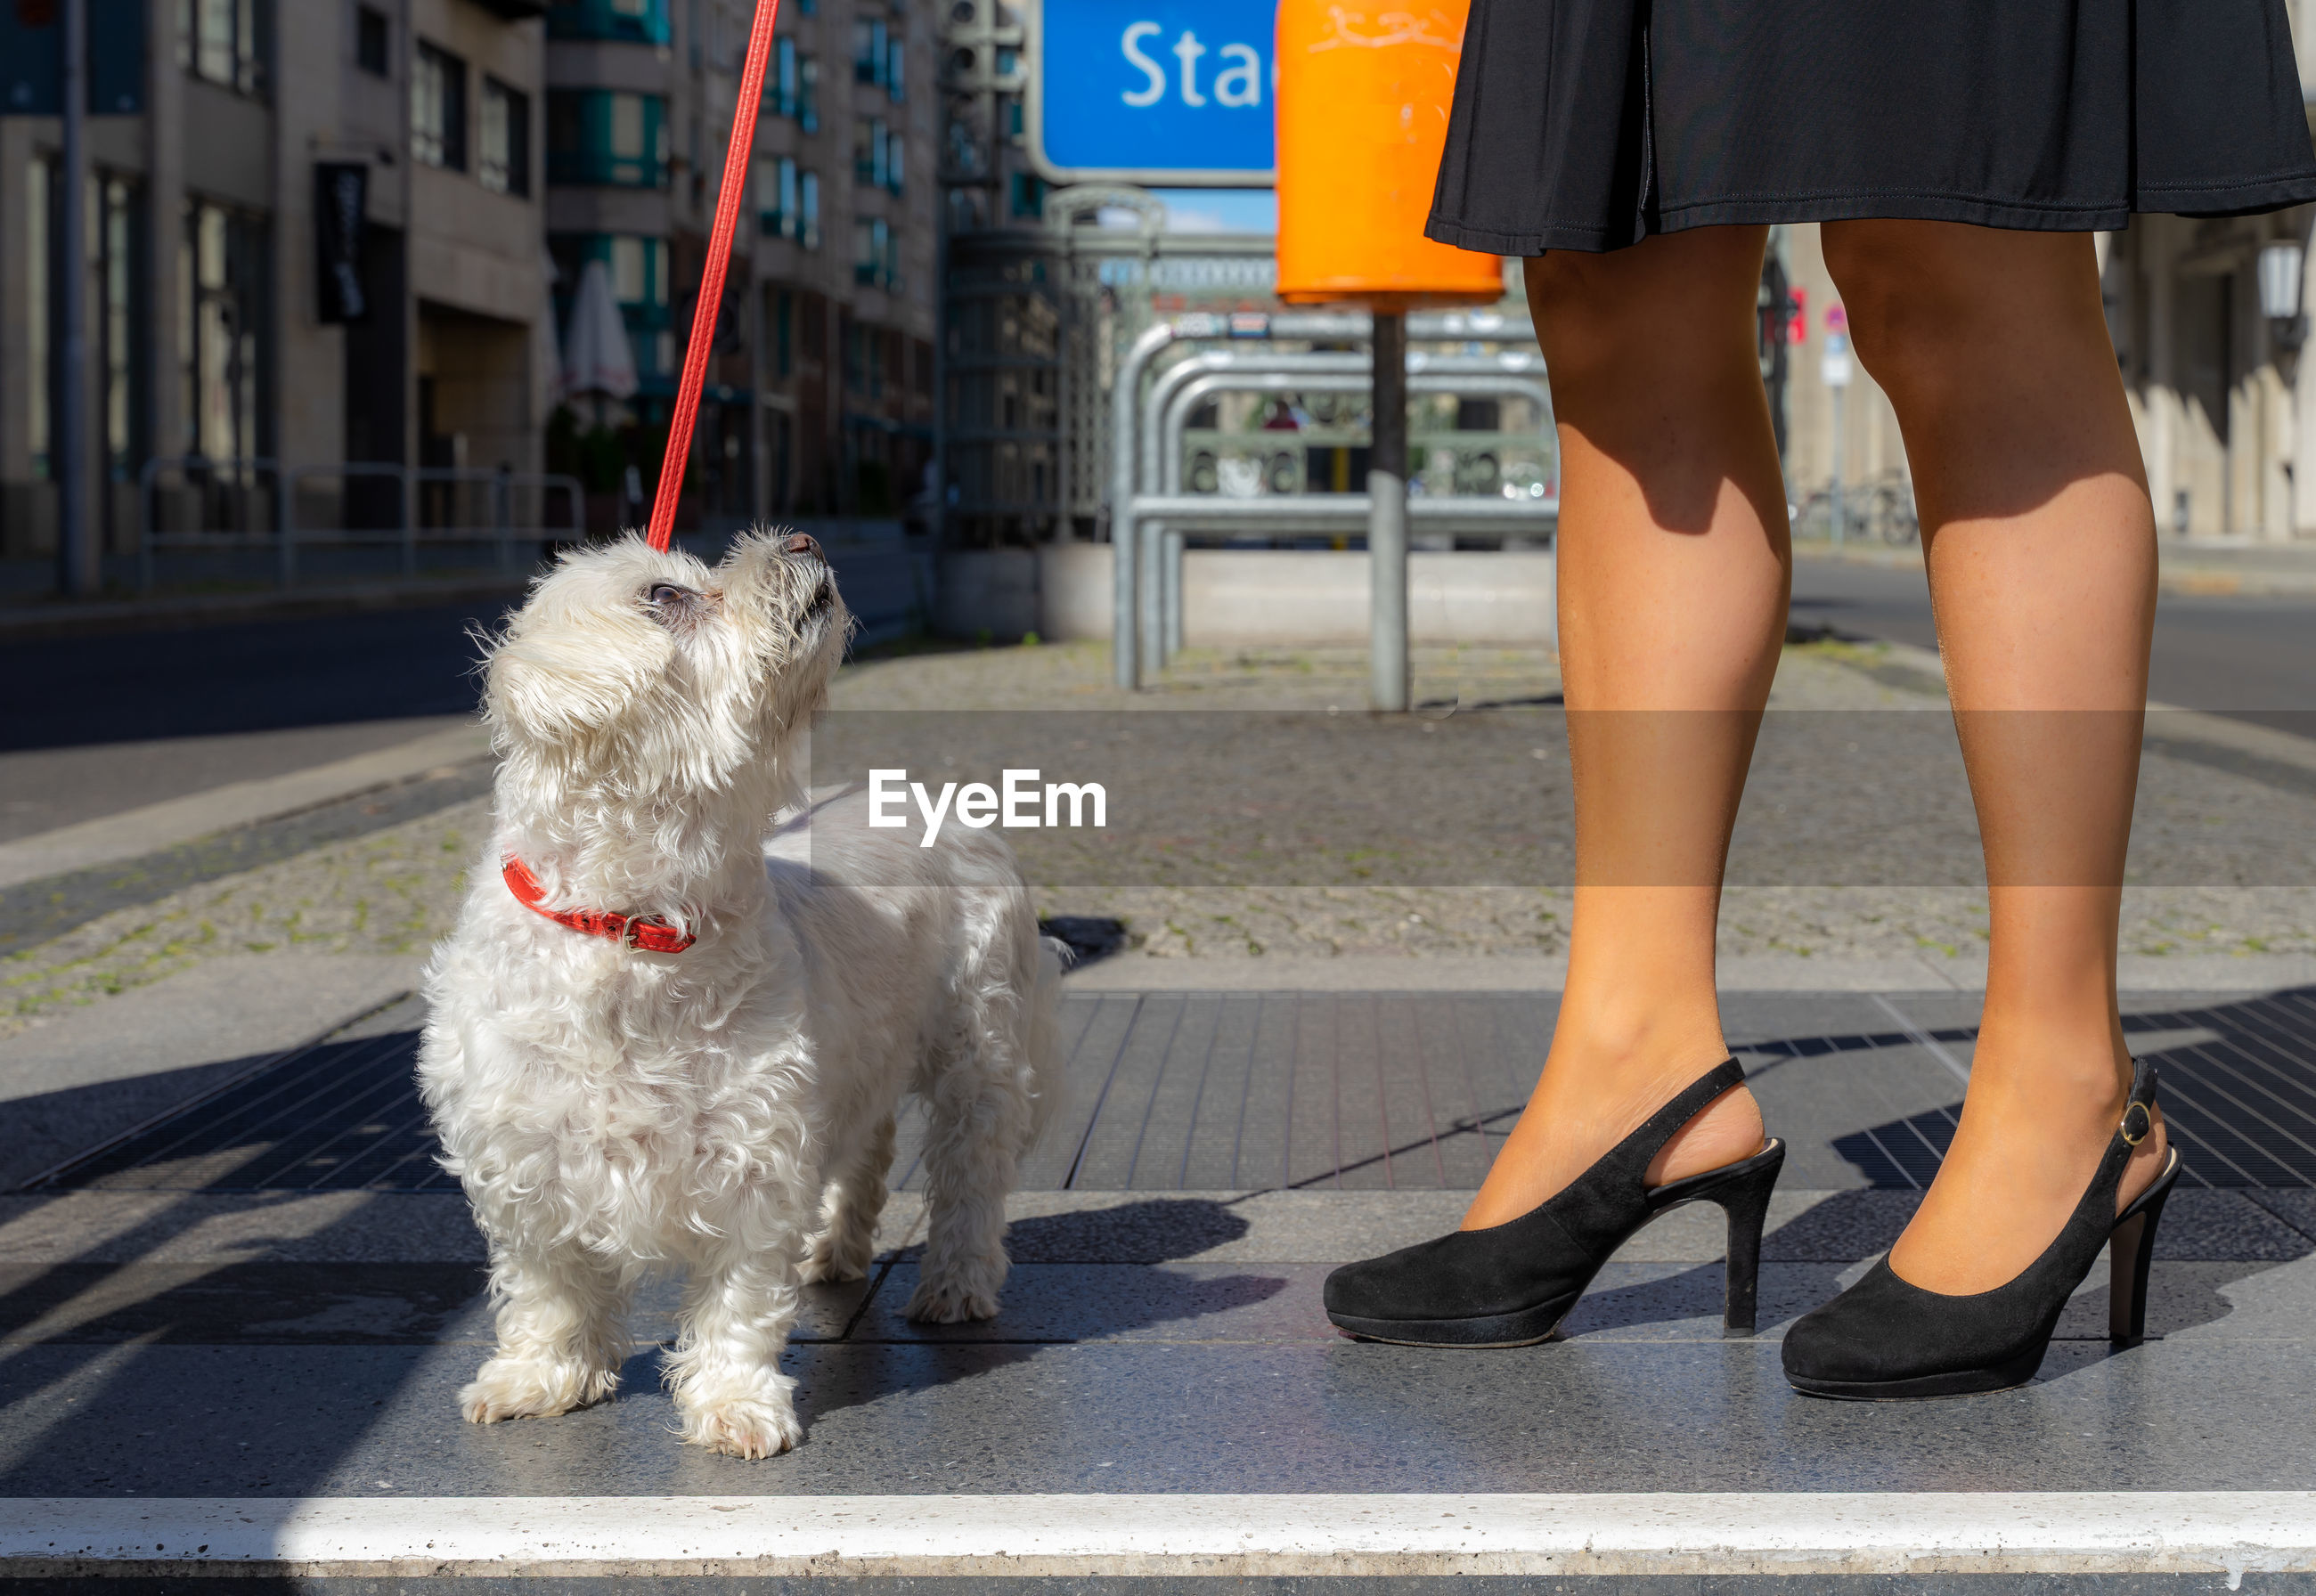 Low section of person with dog standing in city